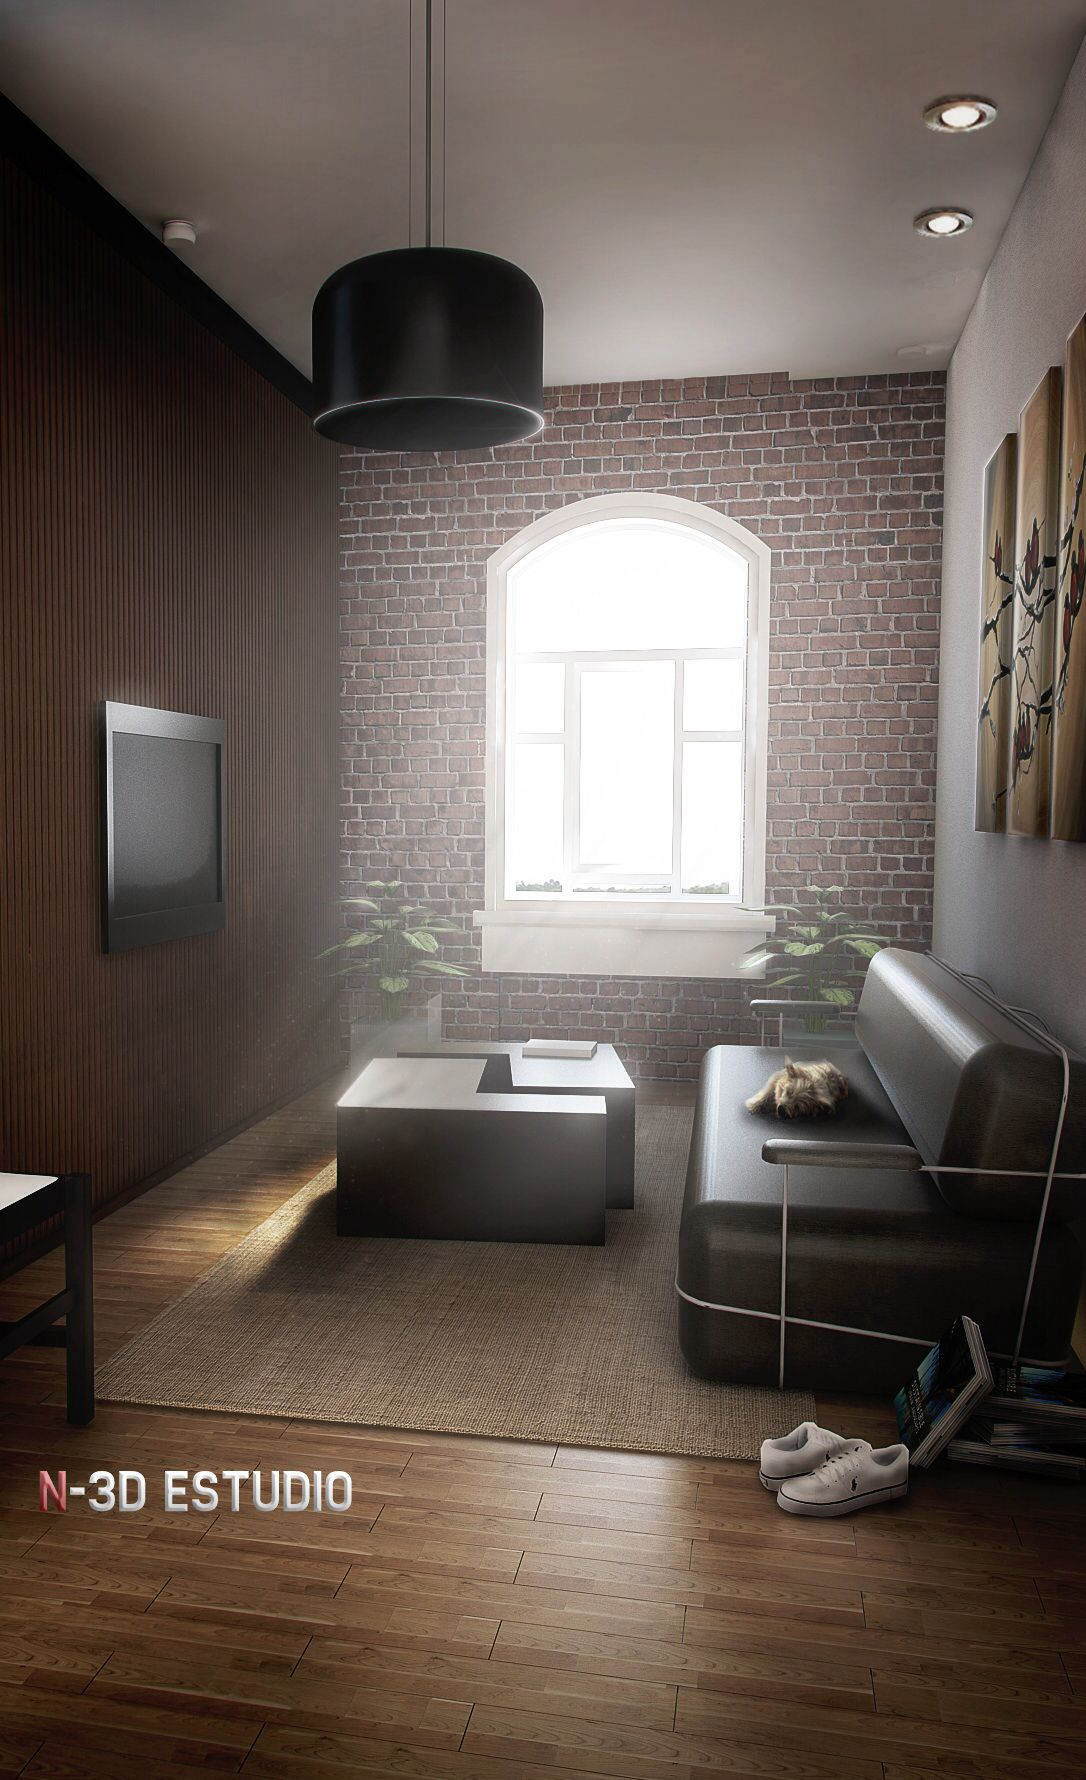 Vray for Sketchup interior | sketchup inspirations | Interior